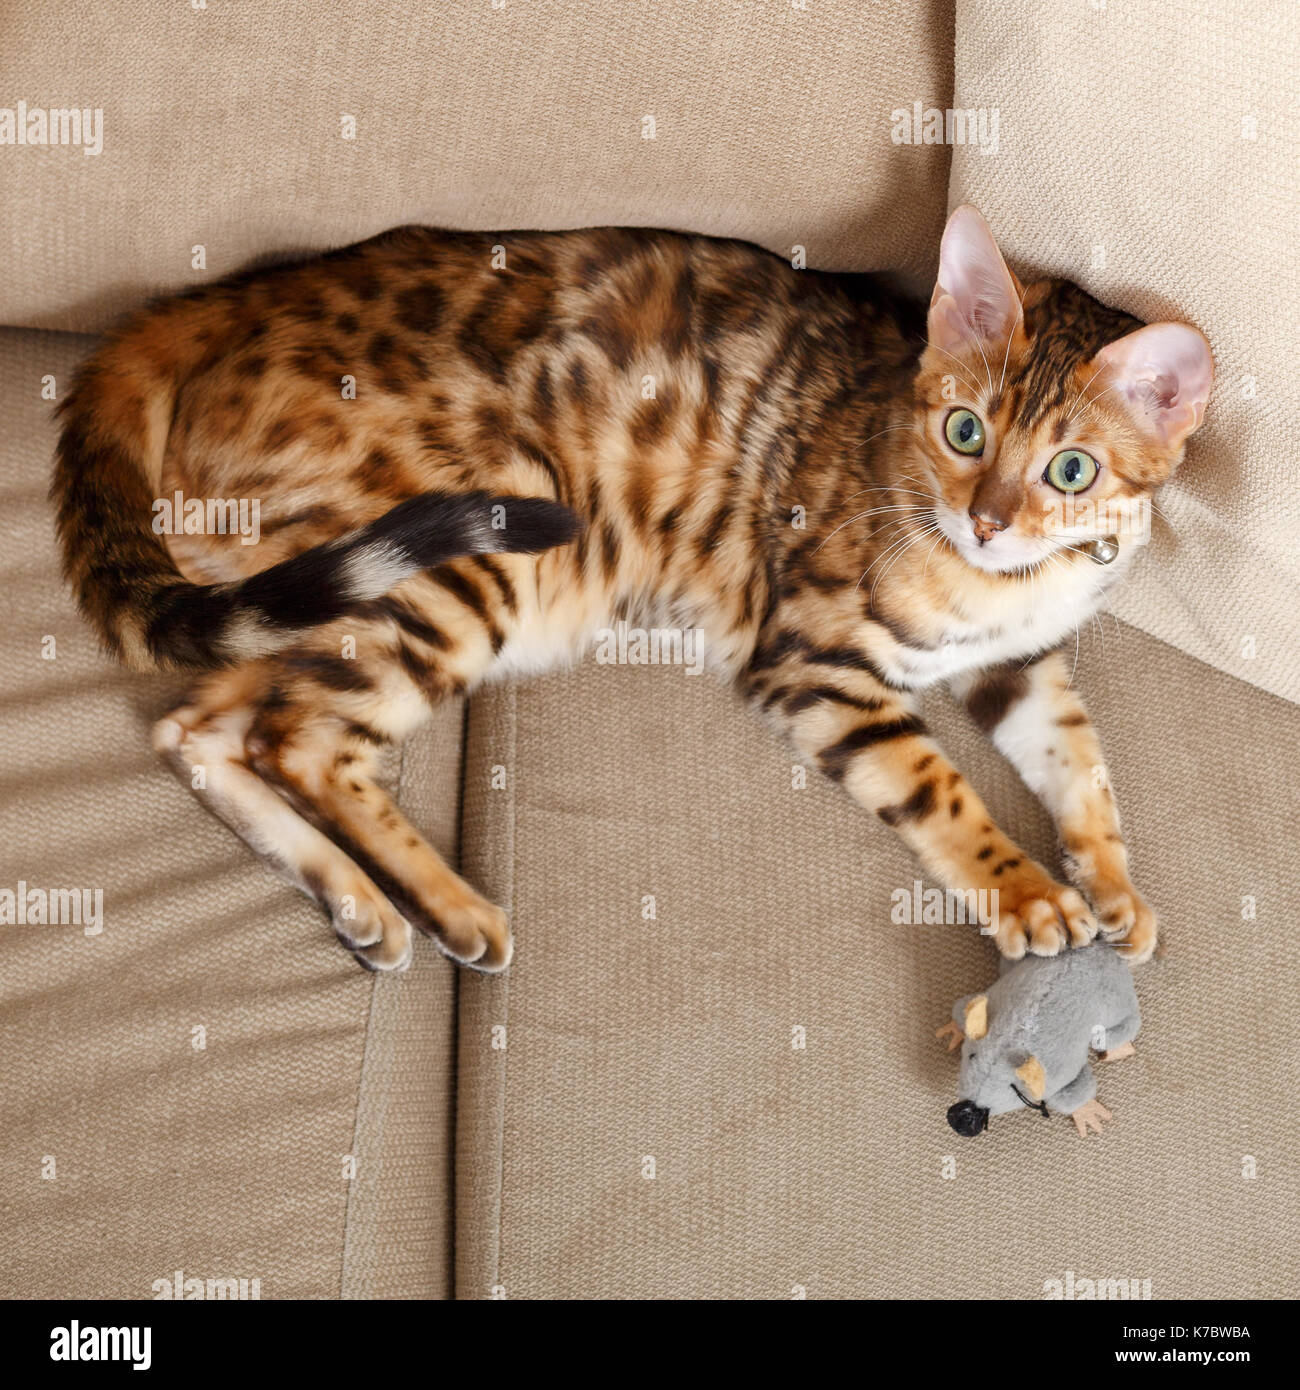 Female Bengal cat kitten on sofa playing with a toy mouse  Model Release: No.  Property Release: Yes (cat). - Stock Image